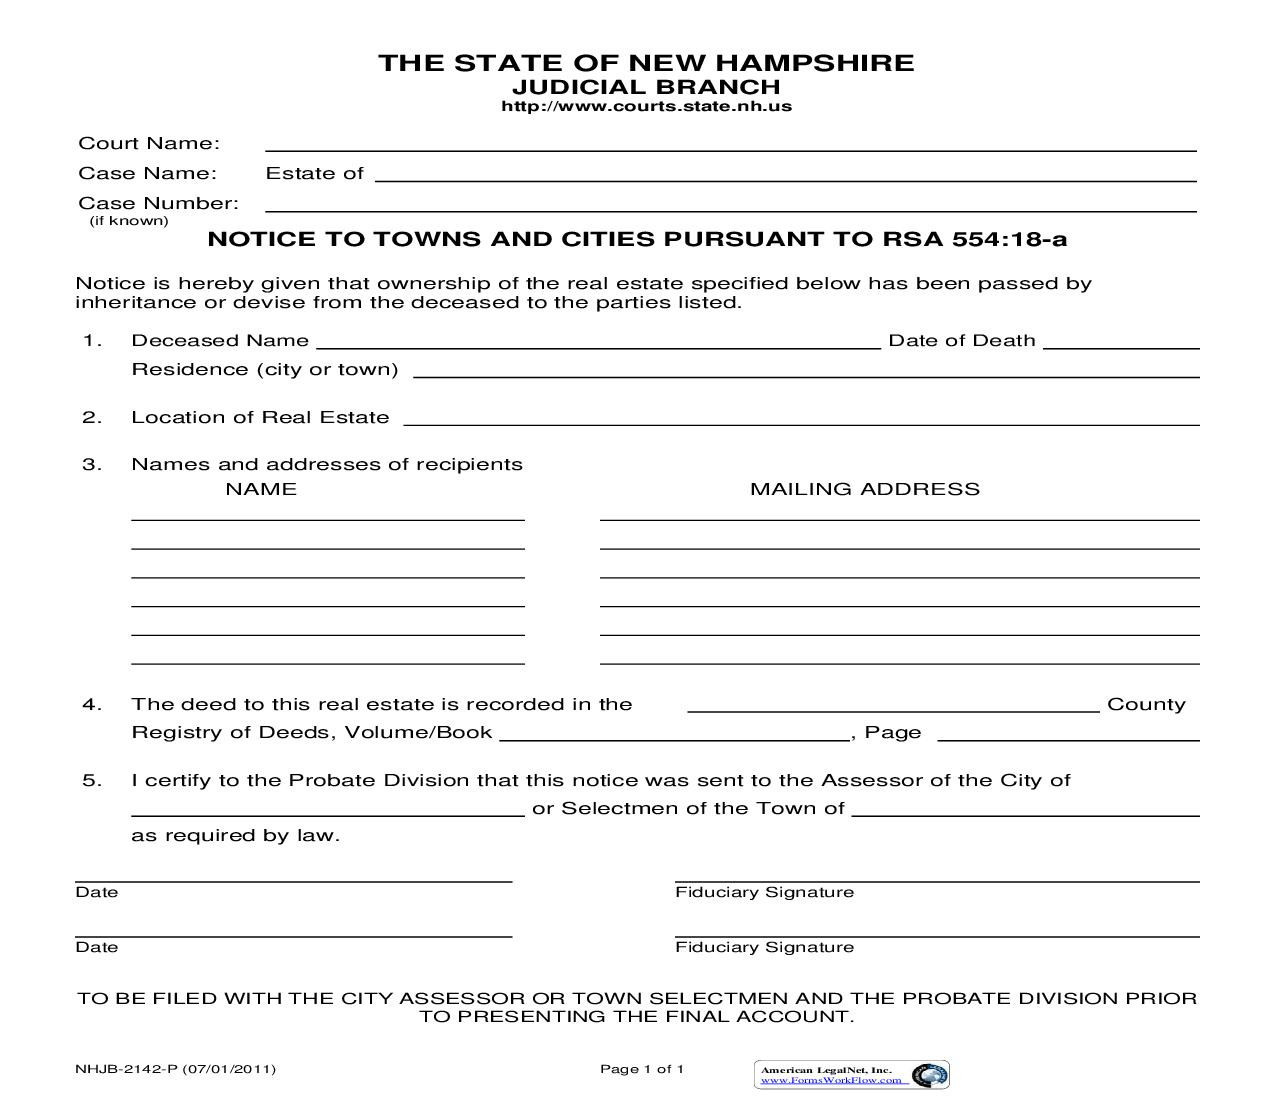 Notice To Towns And Cities Pursuant To RSA 554-18-a {NHJB-2142-P} | Pdf Fpdf Doc Docx | New Hampshire